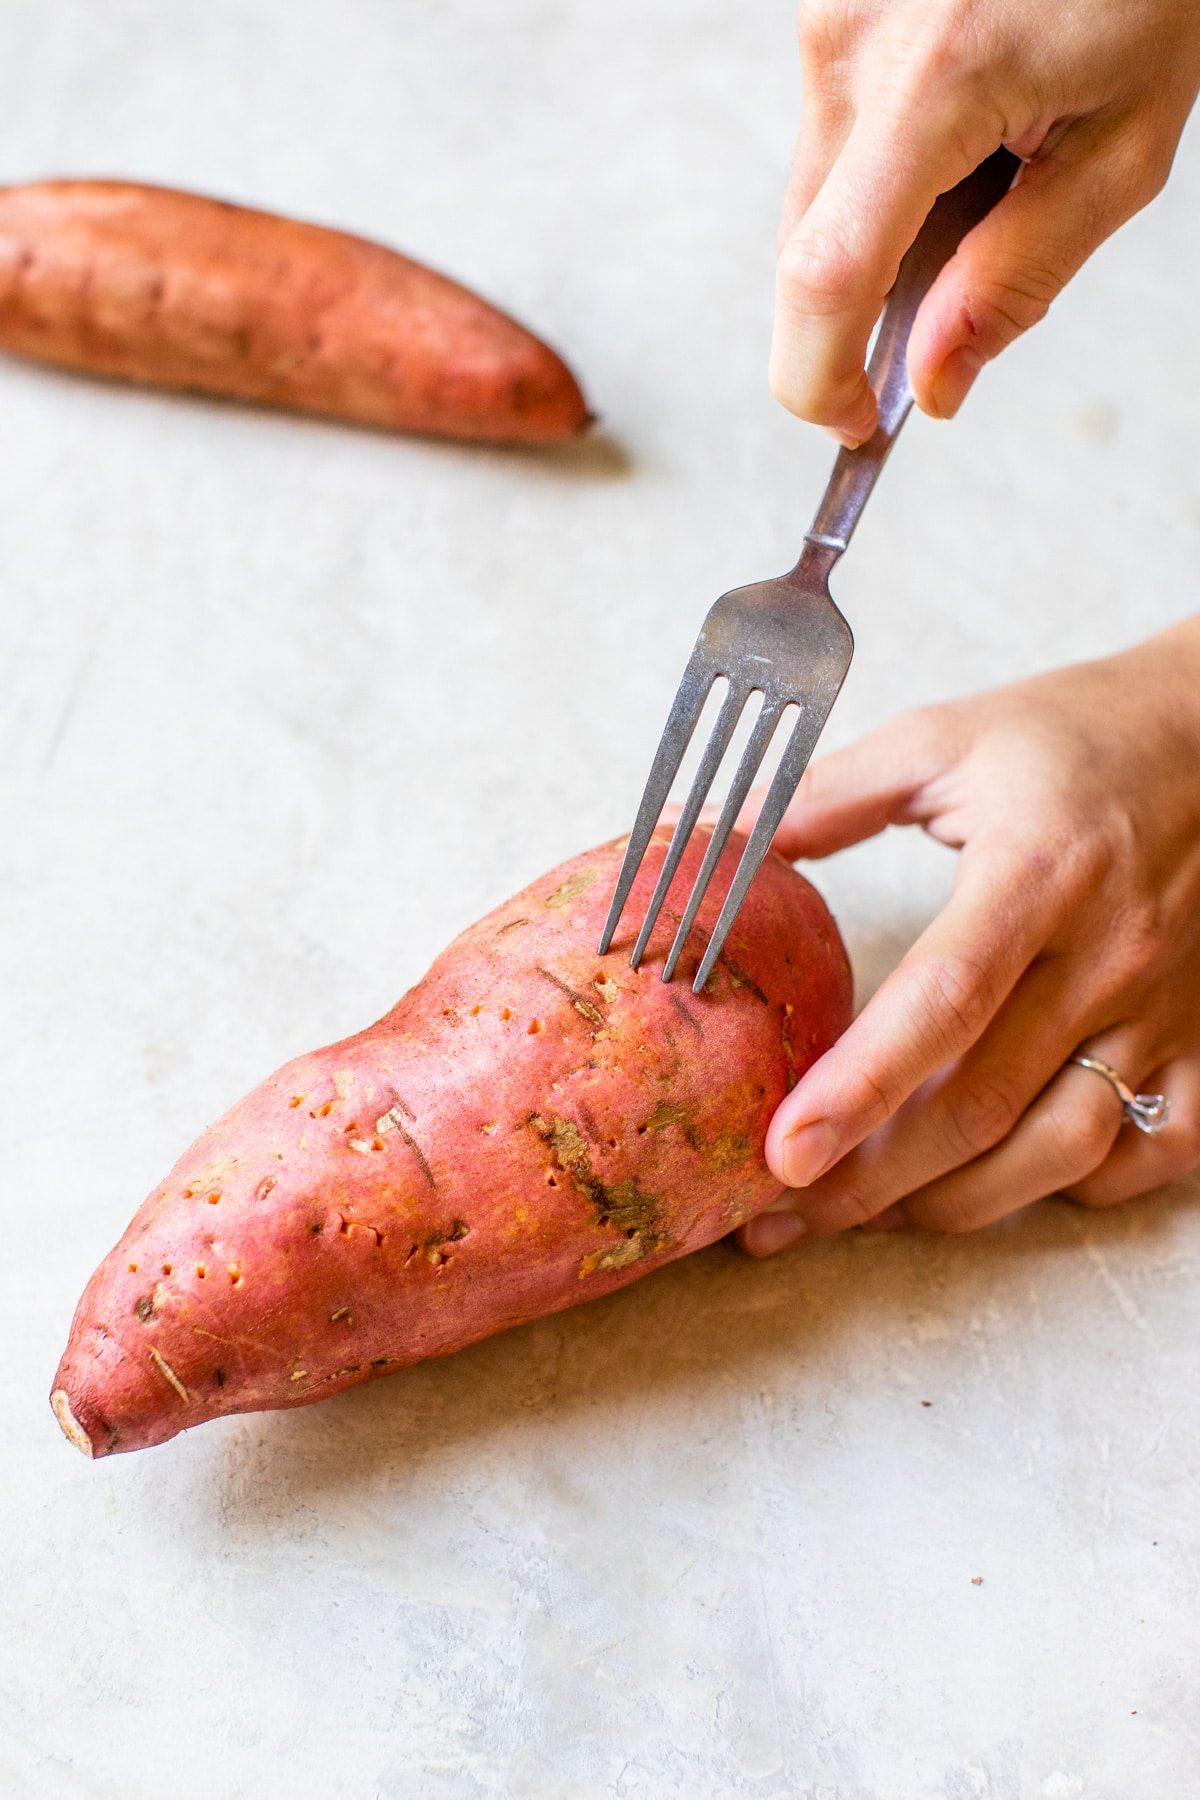 someone poking holes in a sweet potato